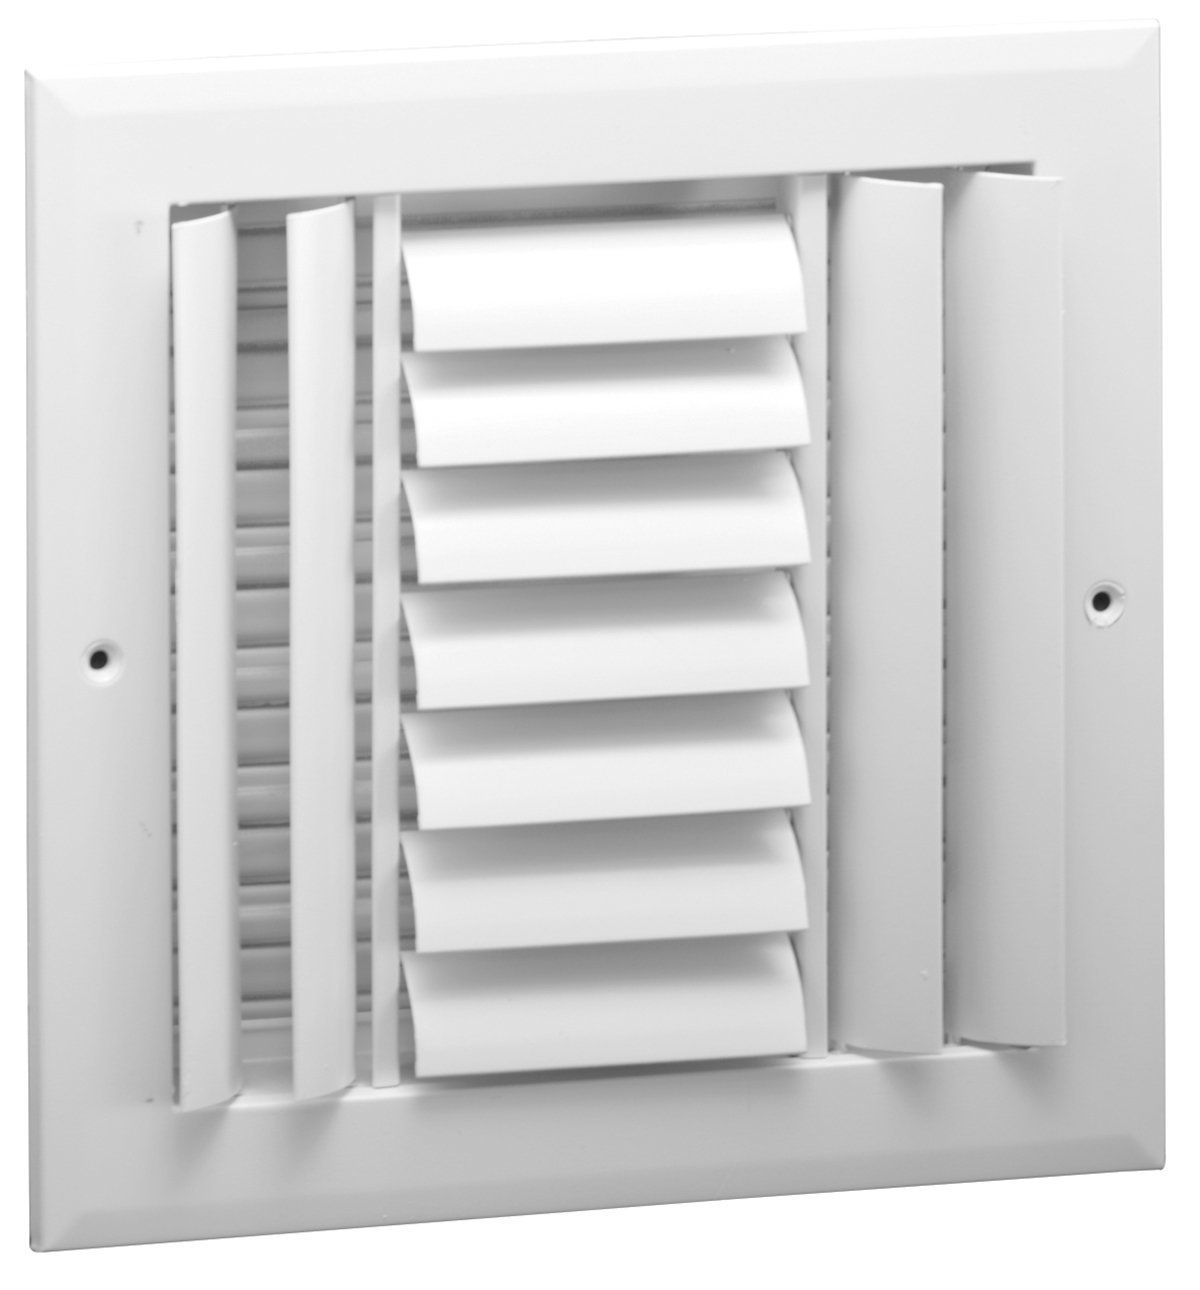 12 X 12 3 Way Air Vent Adjustable Aluminum Curved Blades Maximum Air Flow Hvac Grille For More Information Visit Image Li Air Vent Roof Vents Hvac